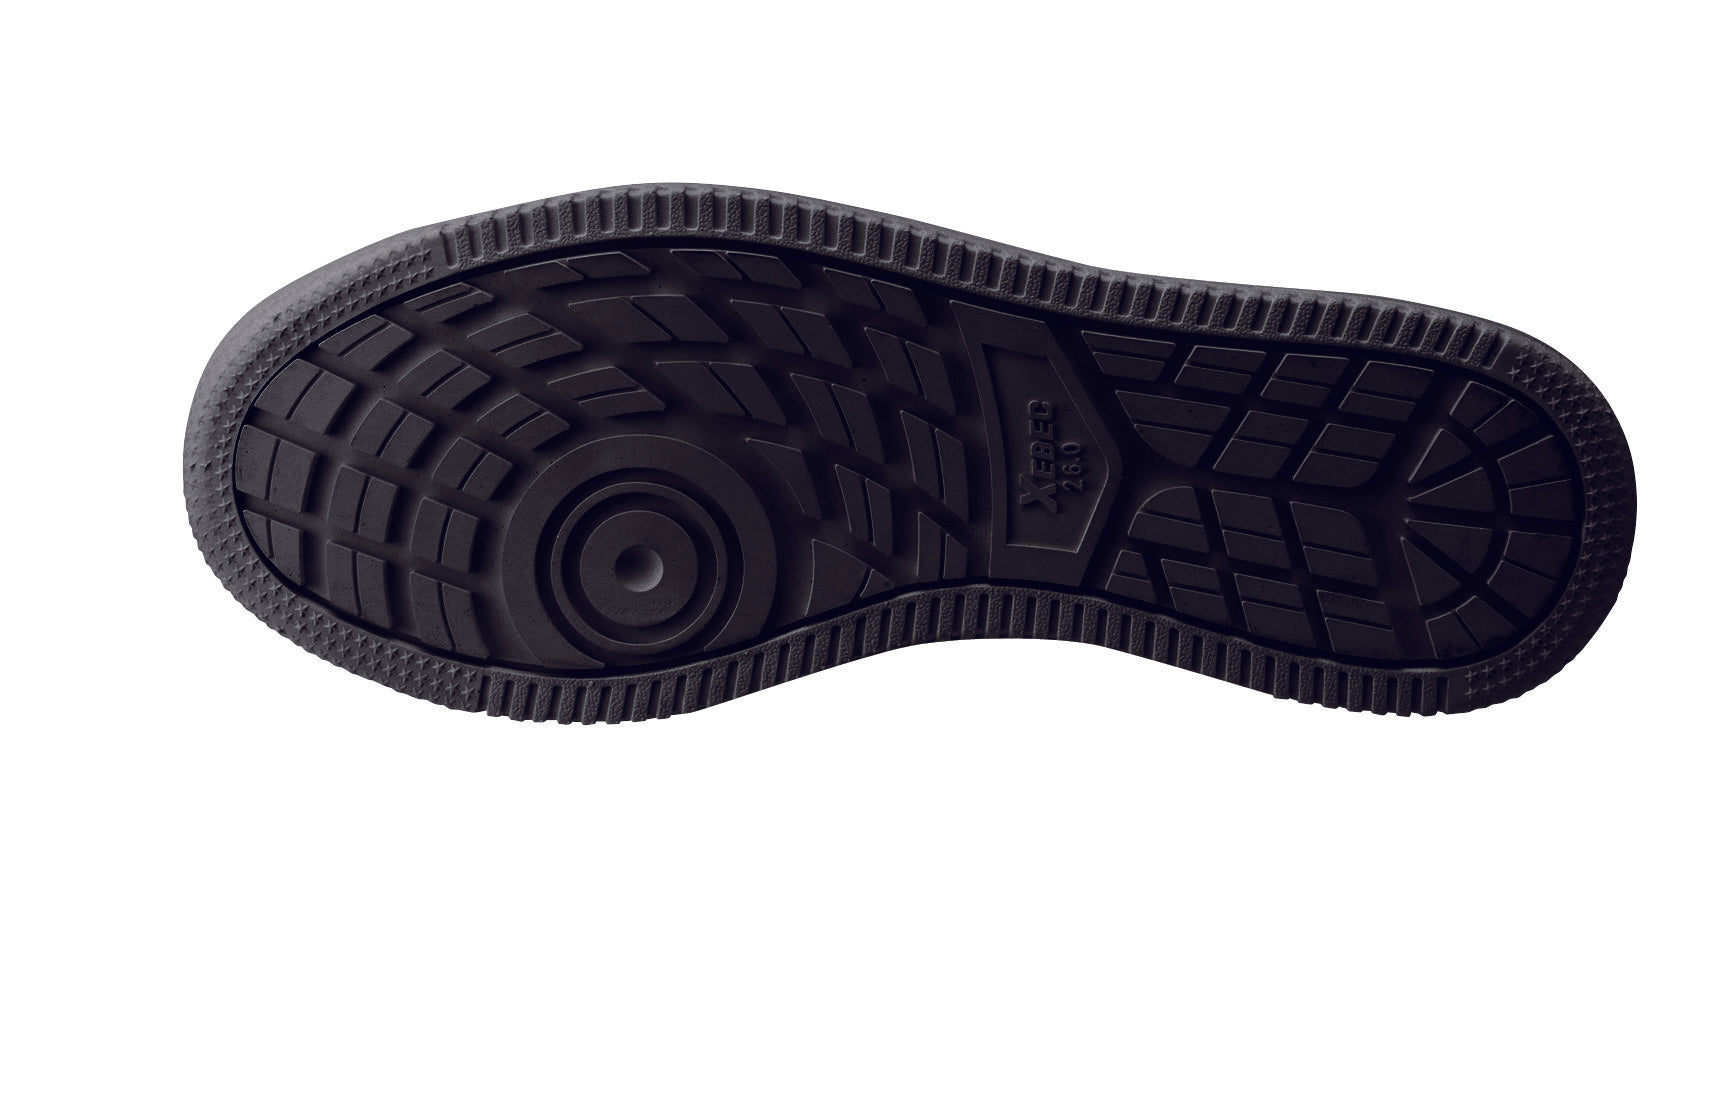 XEBEC 85141 Safety Shoes